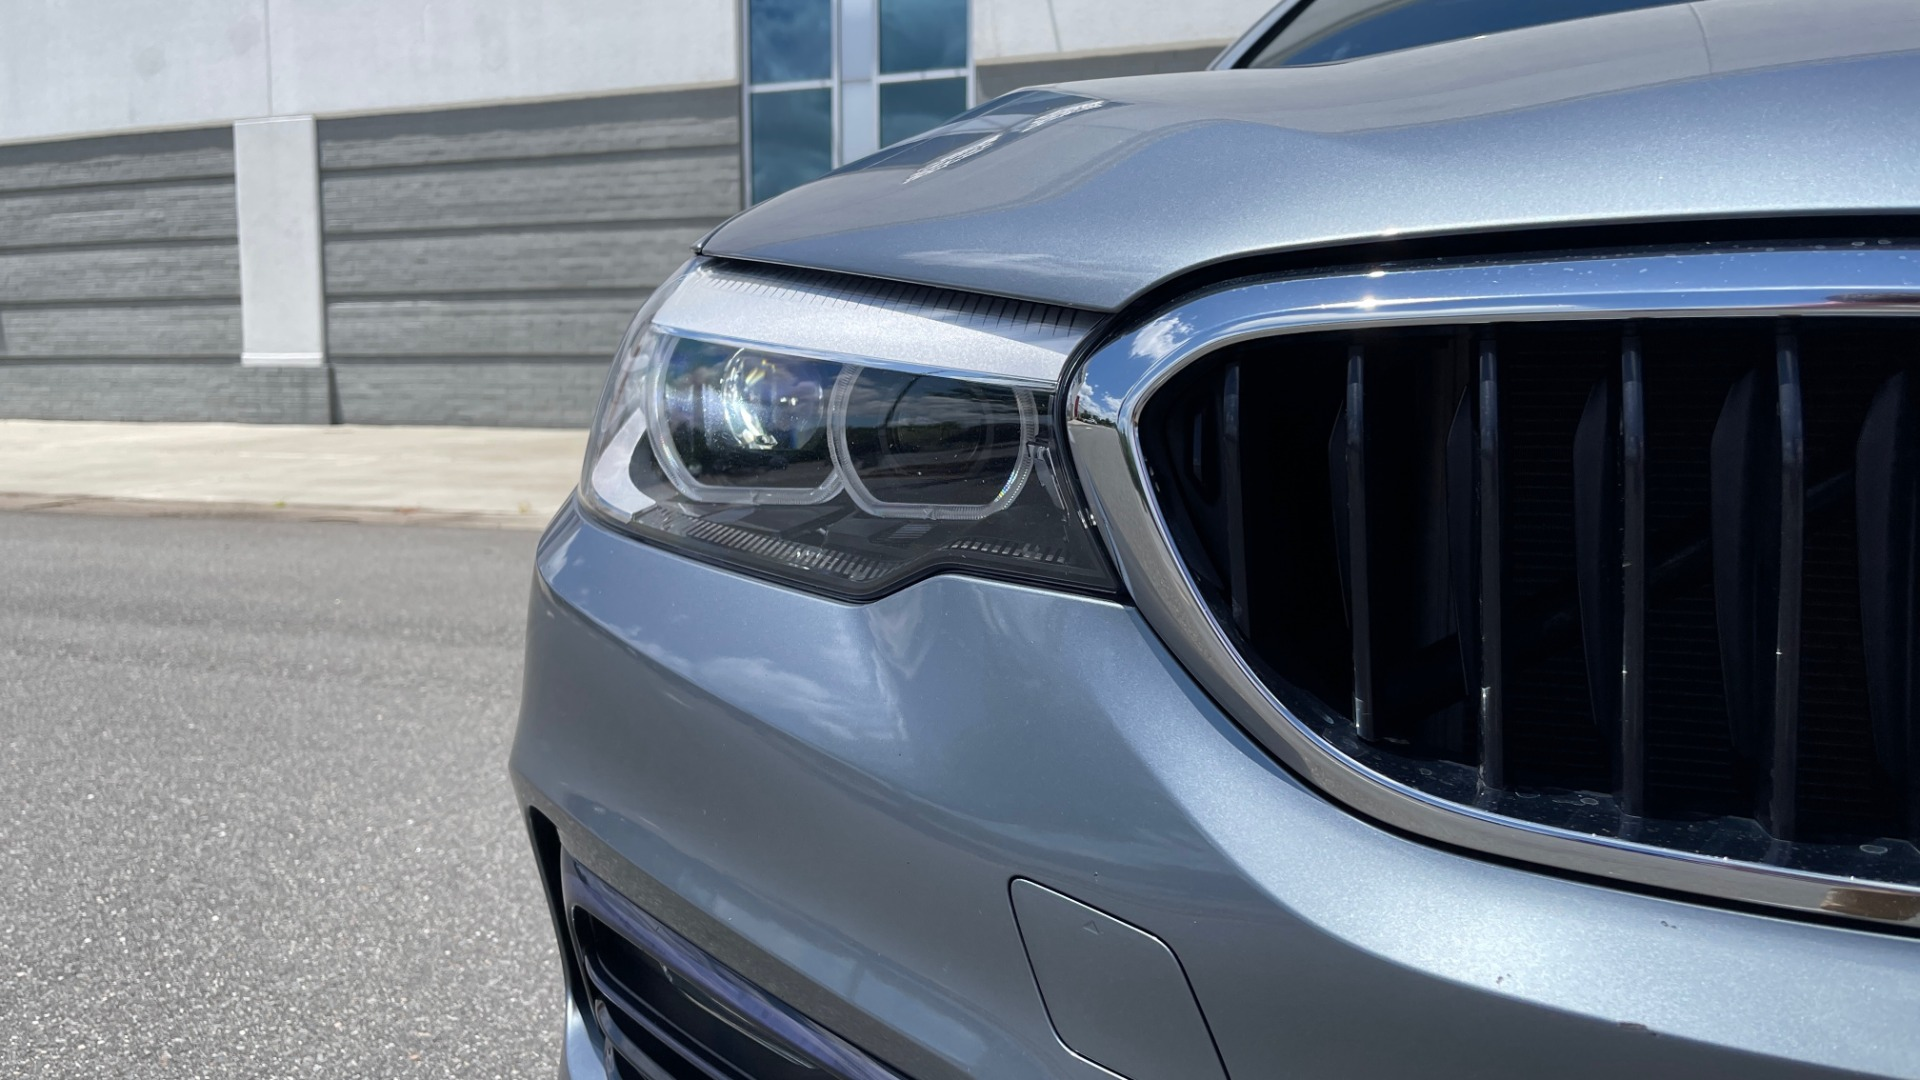 Used 2017 BMW 5 SERIES 530I PREMIUM / WIFI / NAV / SUNROOF / AUTO CLIMATE CONTROL for sale $31,795 at Formula Imports in Charlotte NC 28227 14